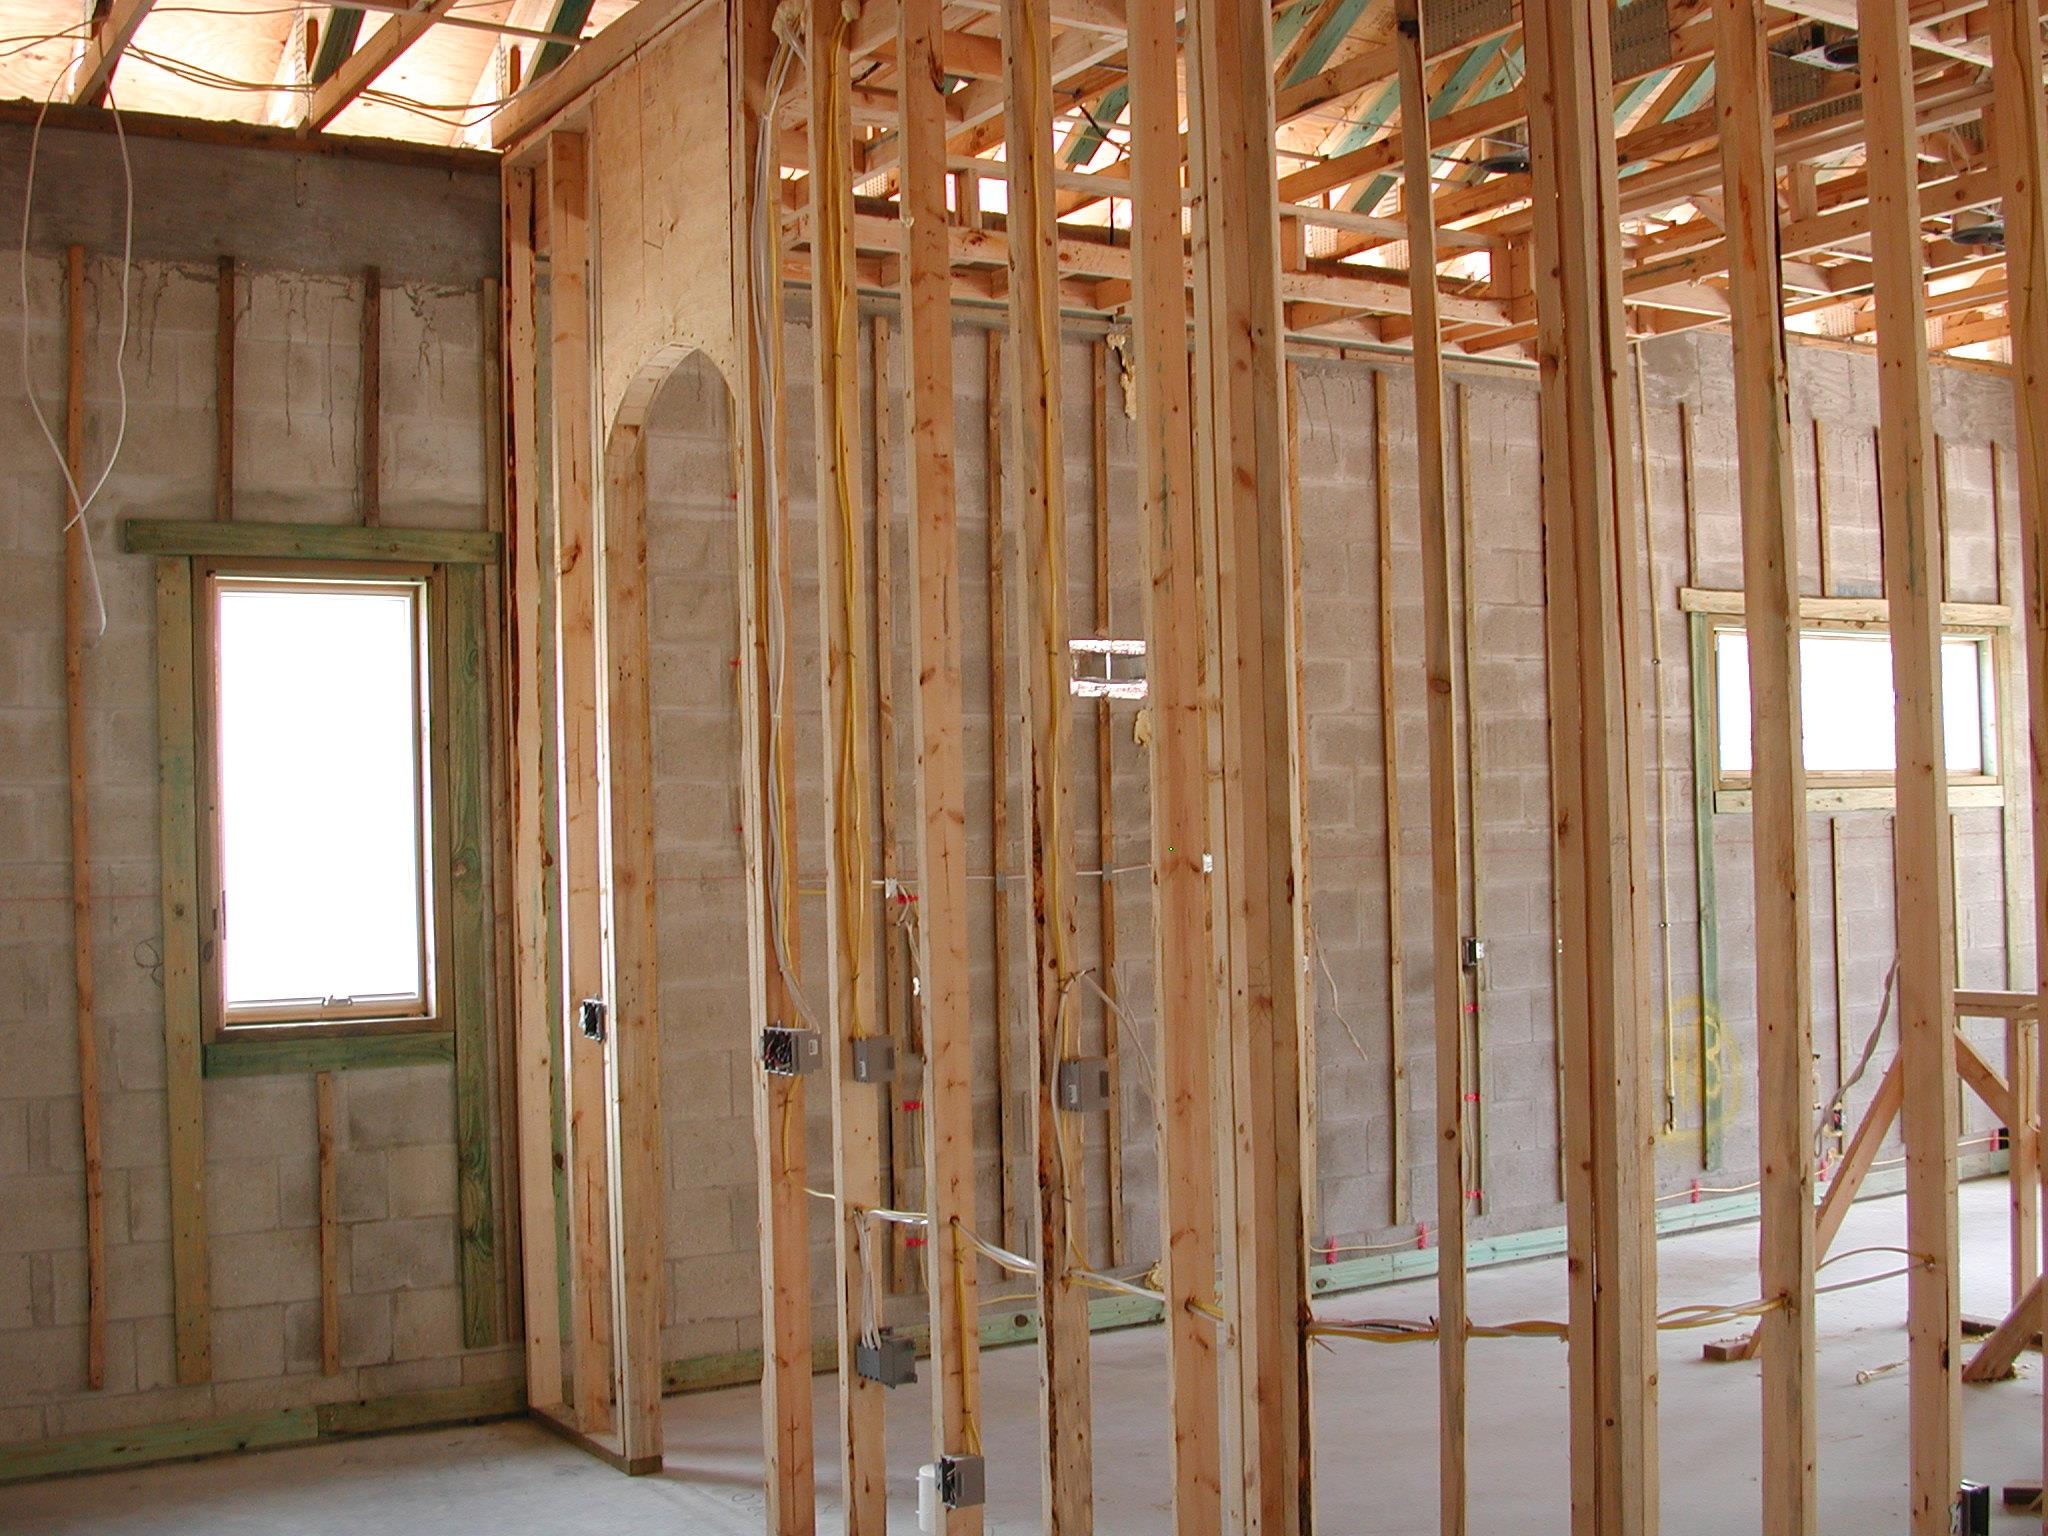 Drywall Studs Chinese Drywall And What It Means To Home Buyers